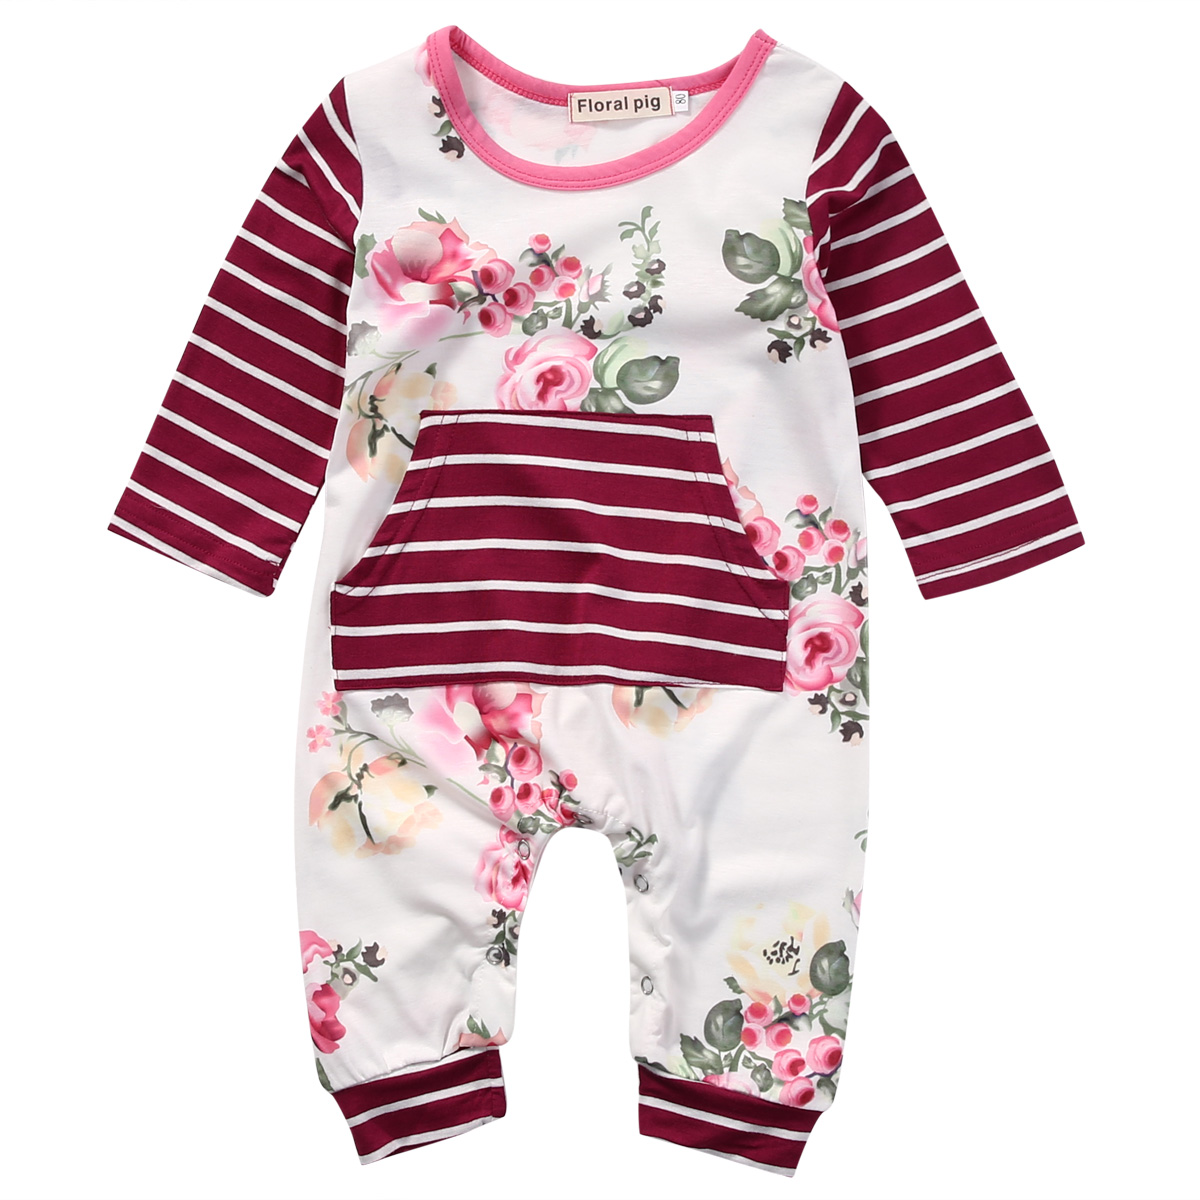 2017 New Floral Romper Infant Bebes Boy Girl Clothes Long Sleeve Newborn Jumpsuit One Pieces Outfit Tracksuit 0-18M 2017 newborn baby boy girl clothes floral infant bebes romper bodysuit and bloomers bottom 2pcs outfit bebek giyim clothing